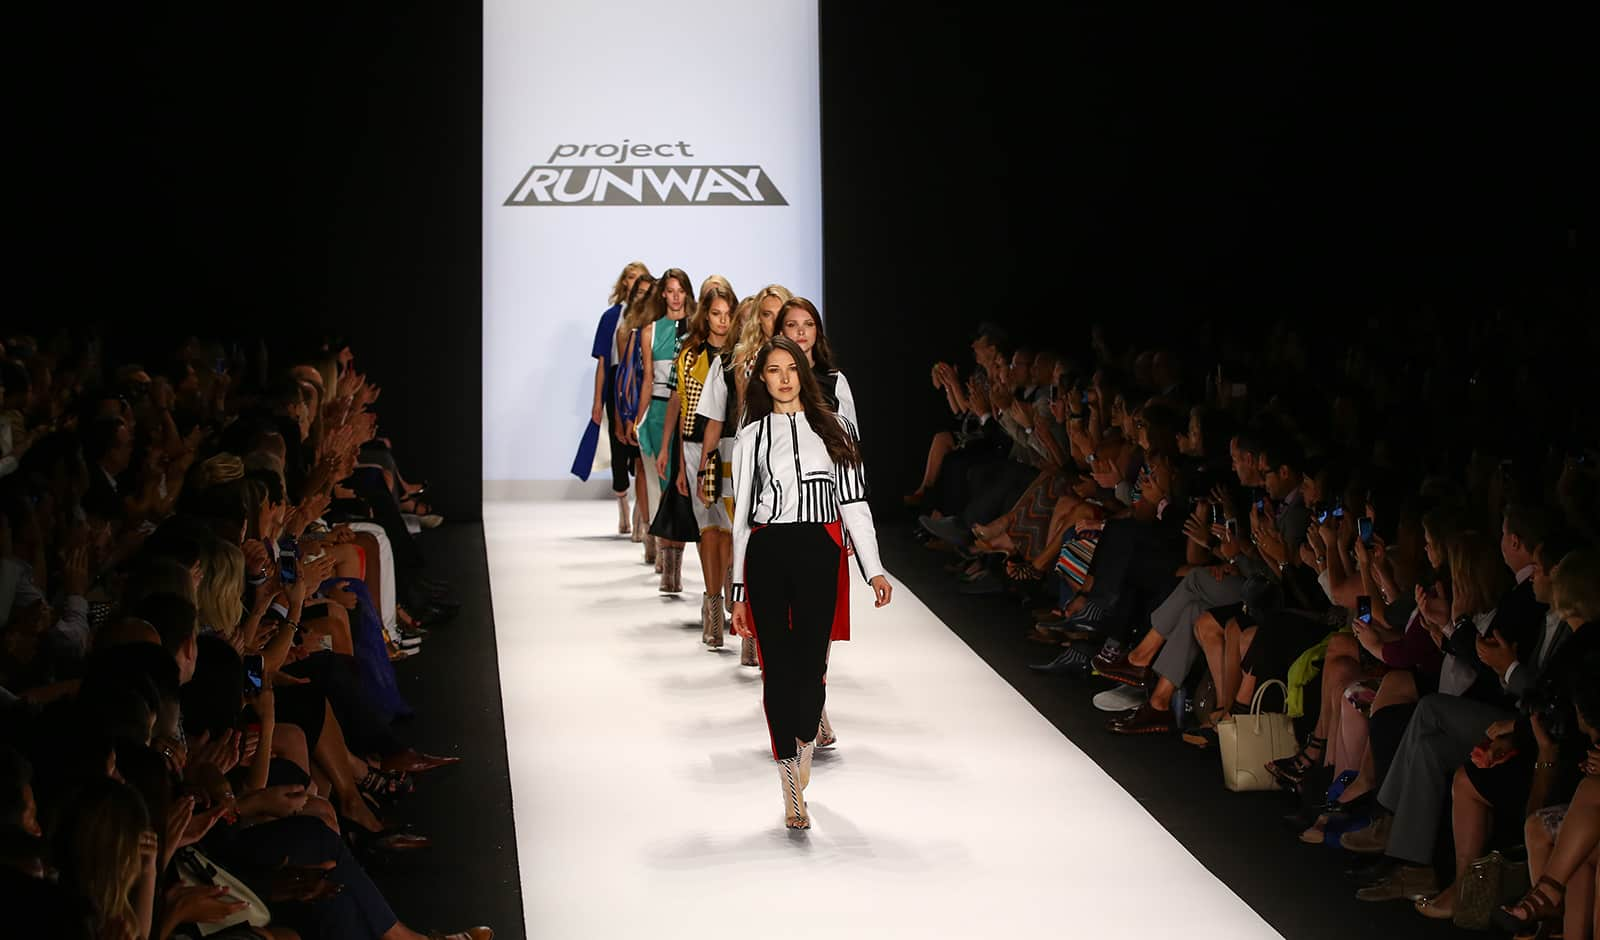 How 'Project Runway' Has Changed the Fashion Industry